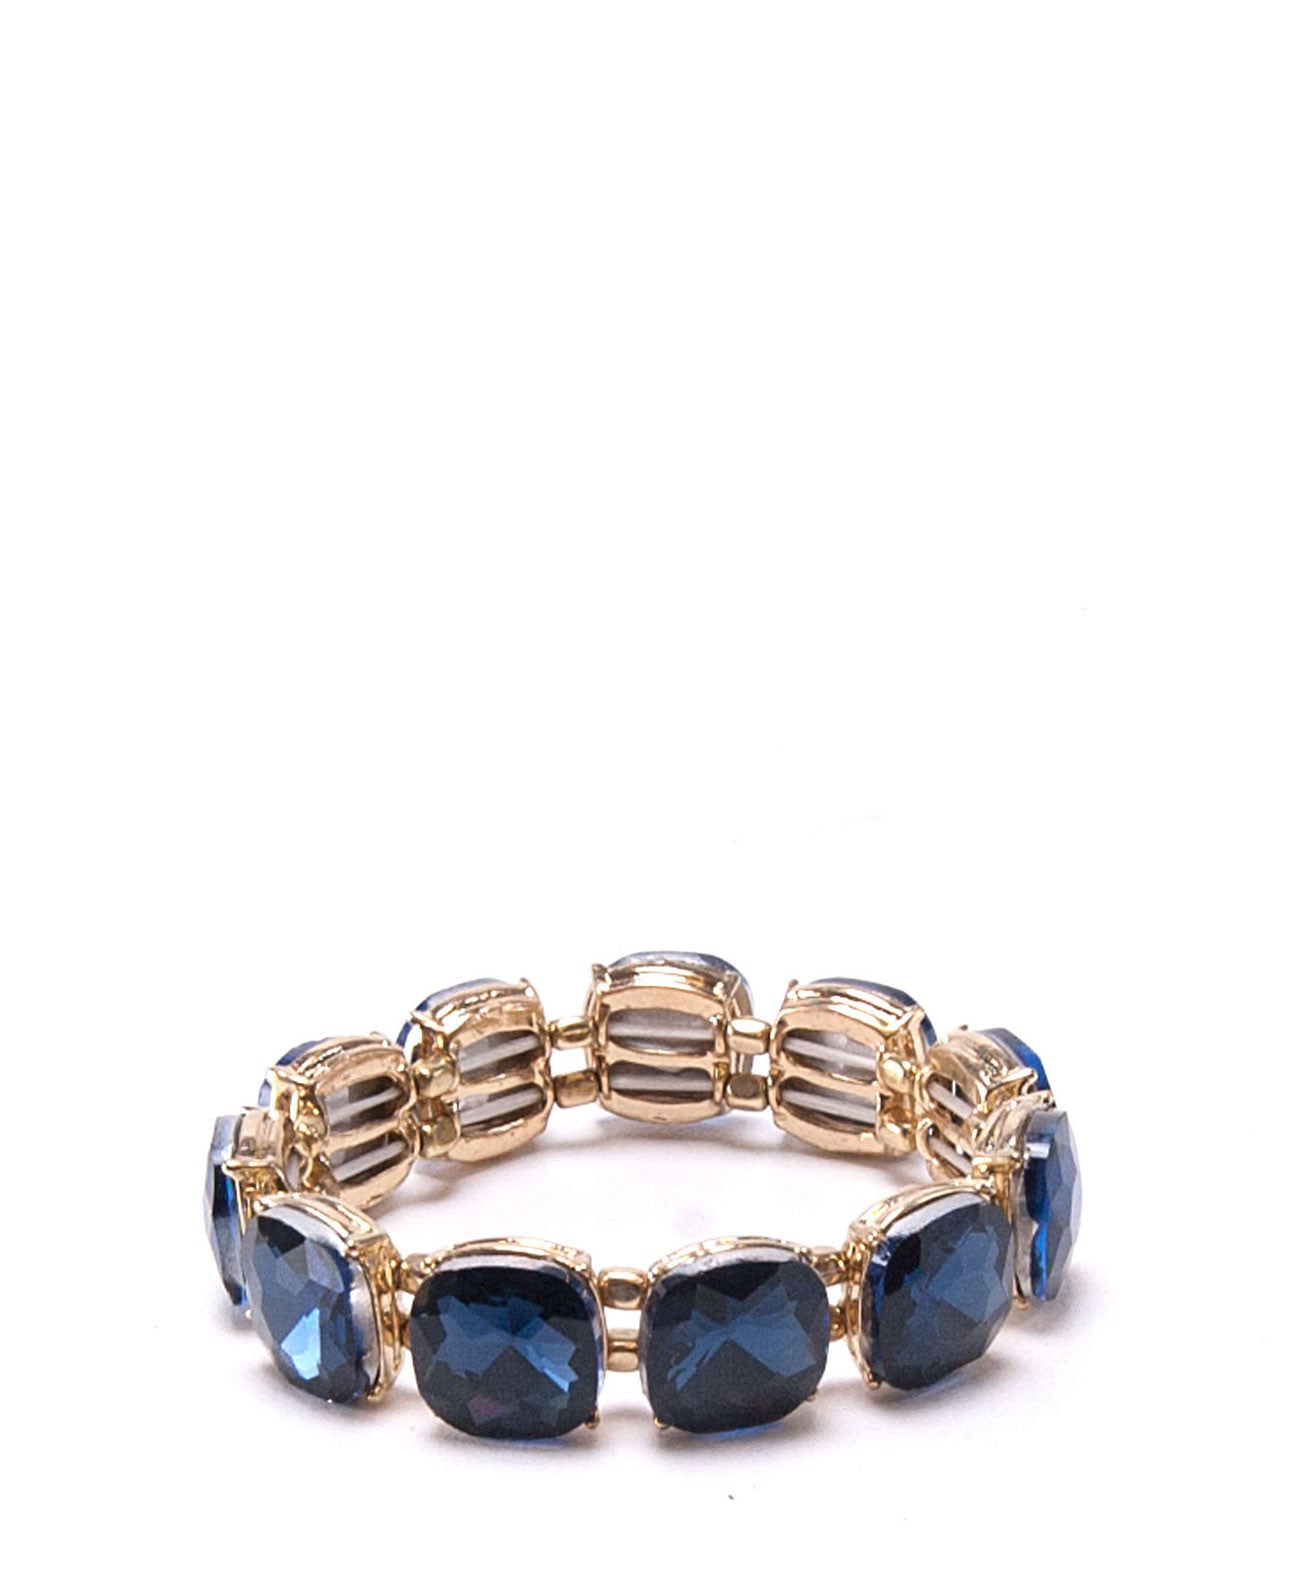 Square Crystal Bracelet (Navy/Gold) by Surii - Koko & Palenki